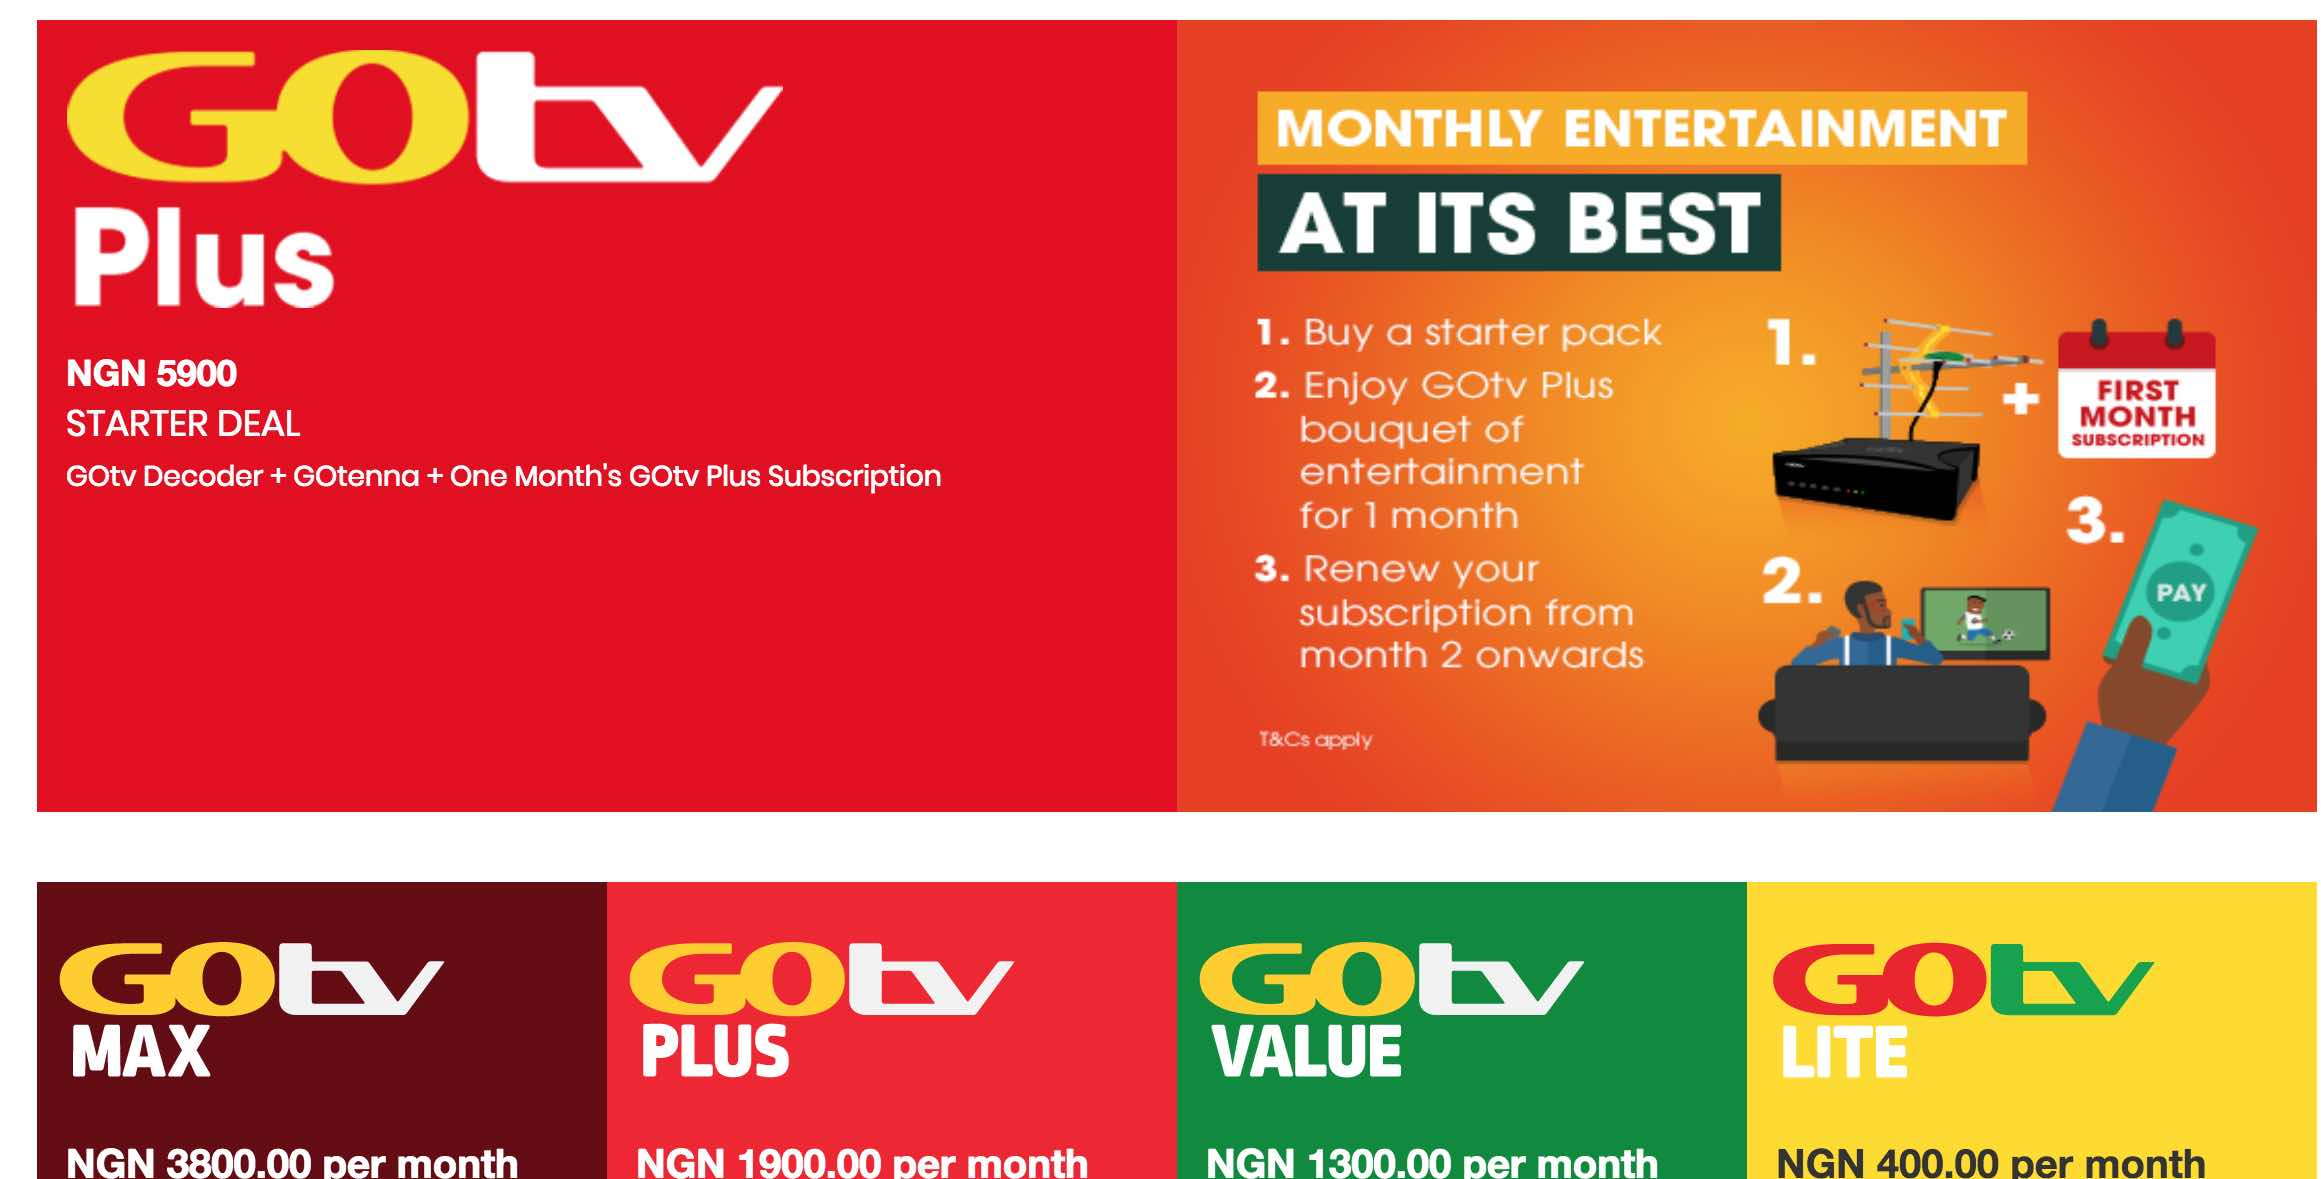 Introducing new GOtv Max subscription which includes 5 dedicated sports channels + more